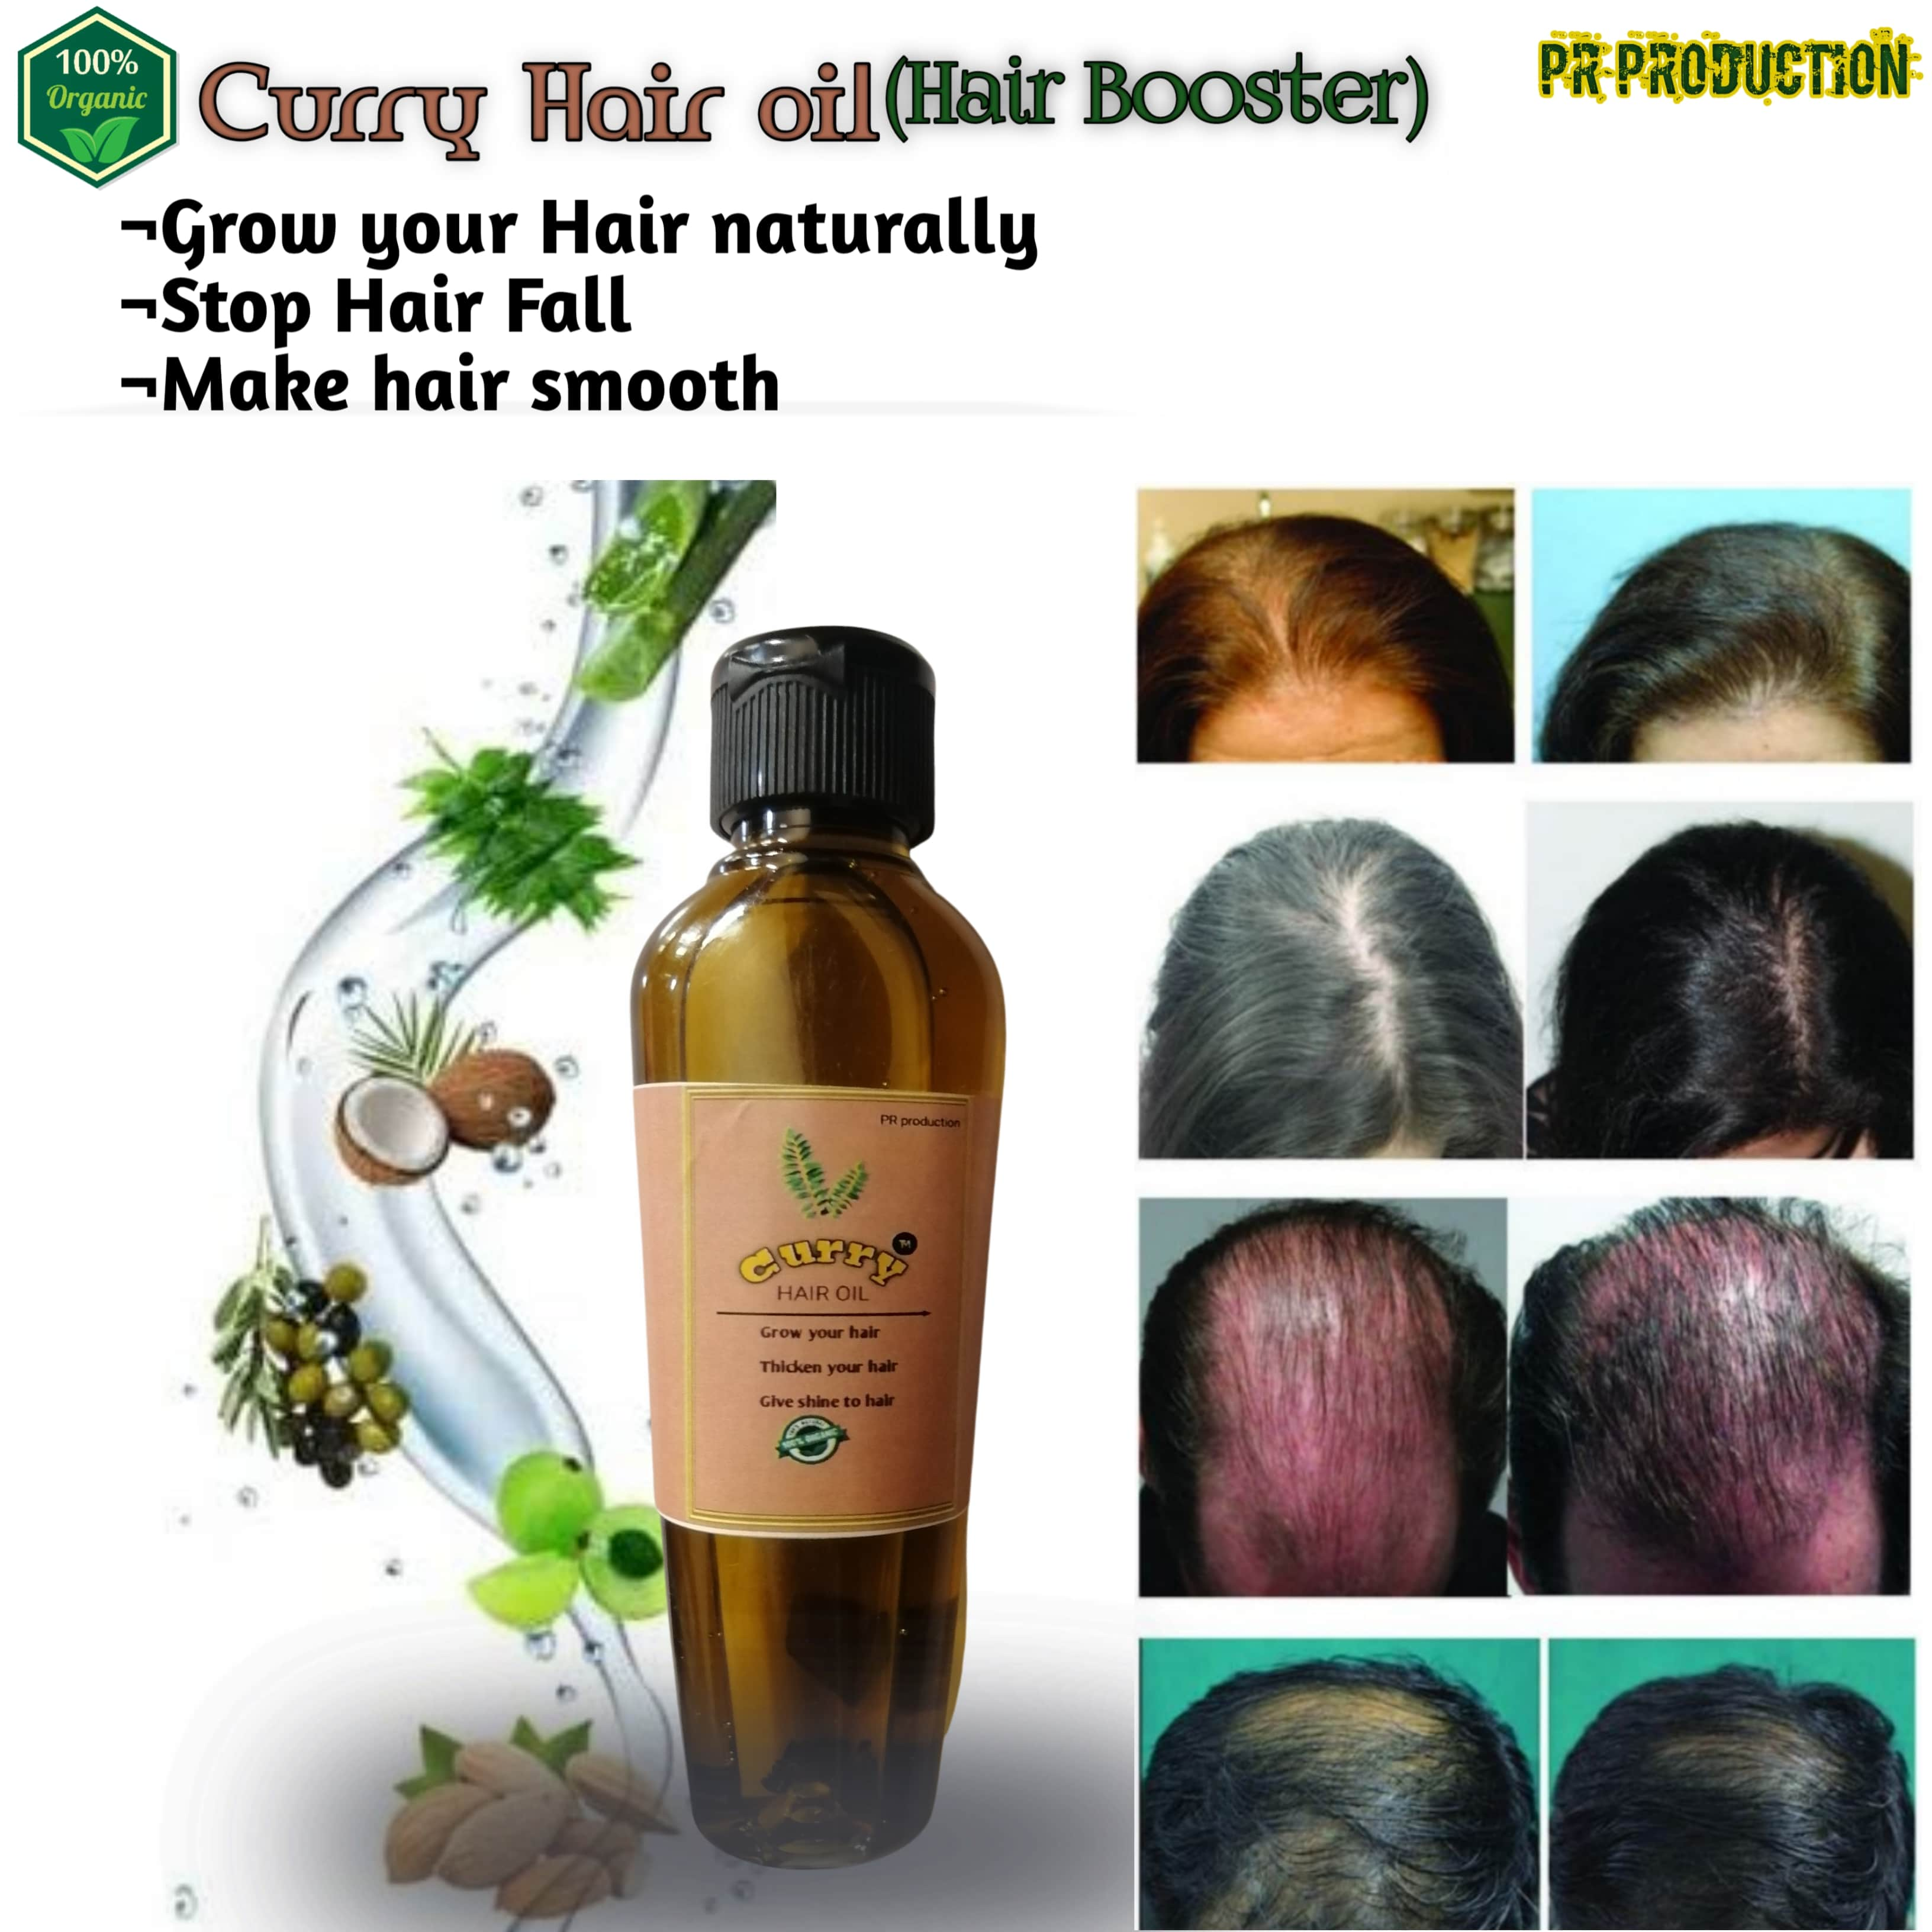 Curry Hair Oil For Long and Thick Hairs - Both For Men and Women - Organic Hair Oil - Anti Hair Fall Oil